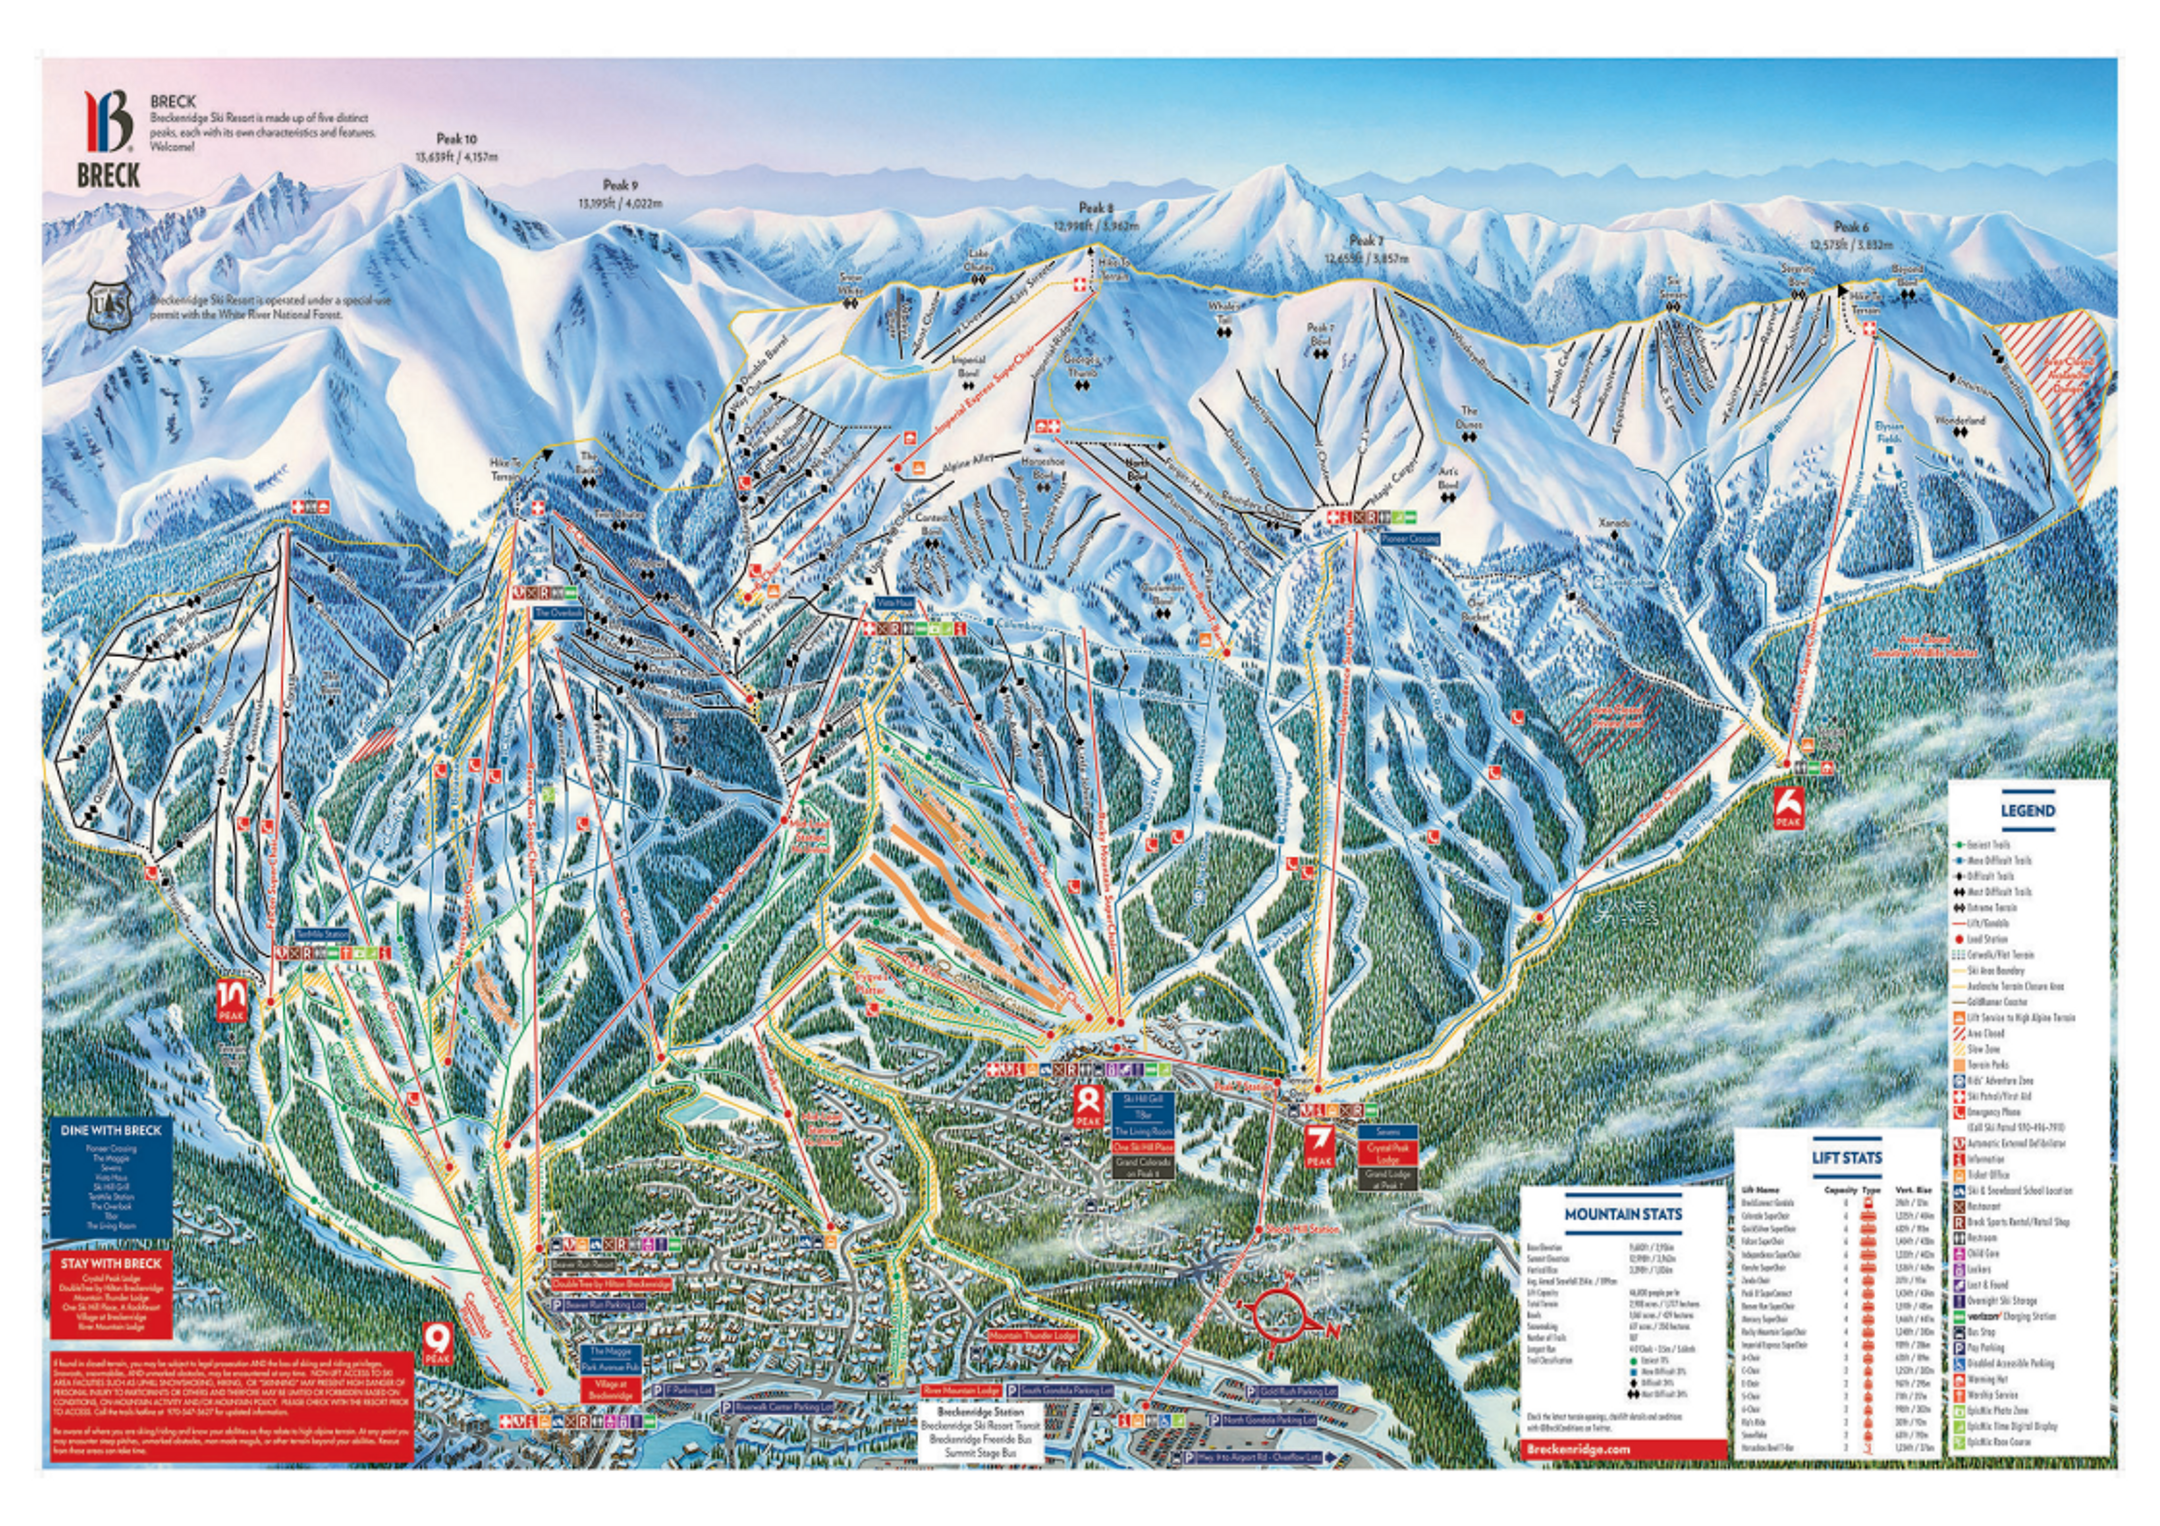 Breckenridge ski-resort-trail-map United States ripatrip